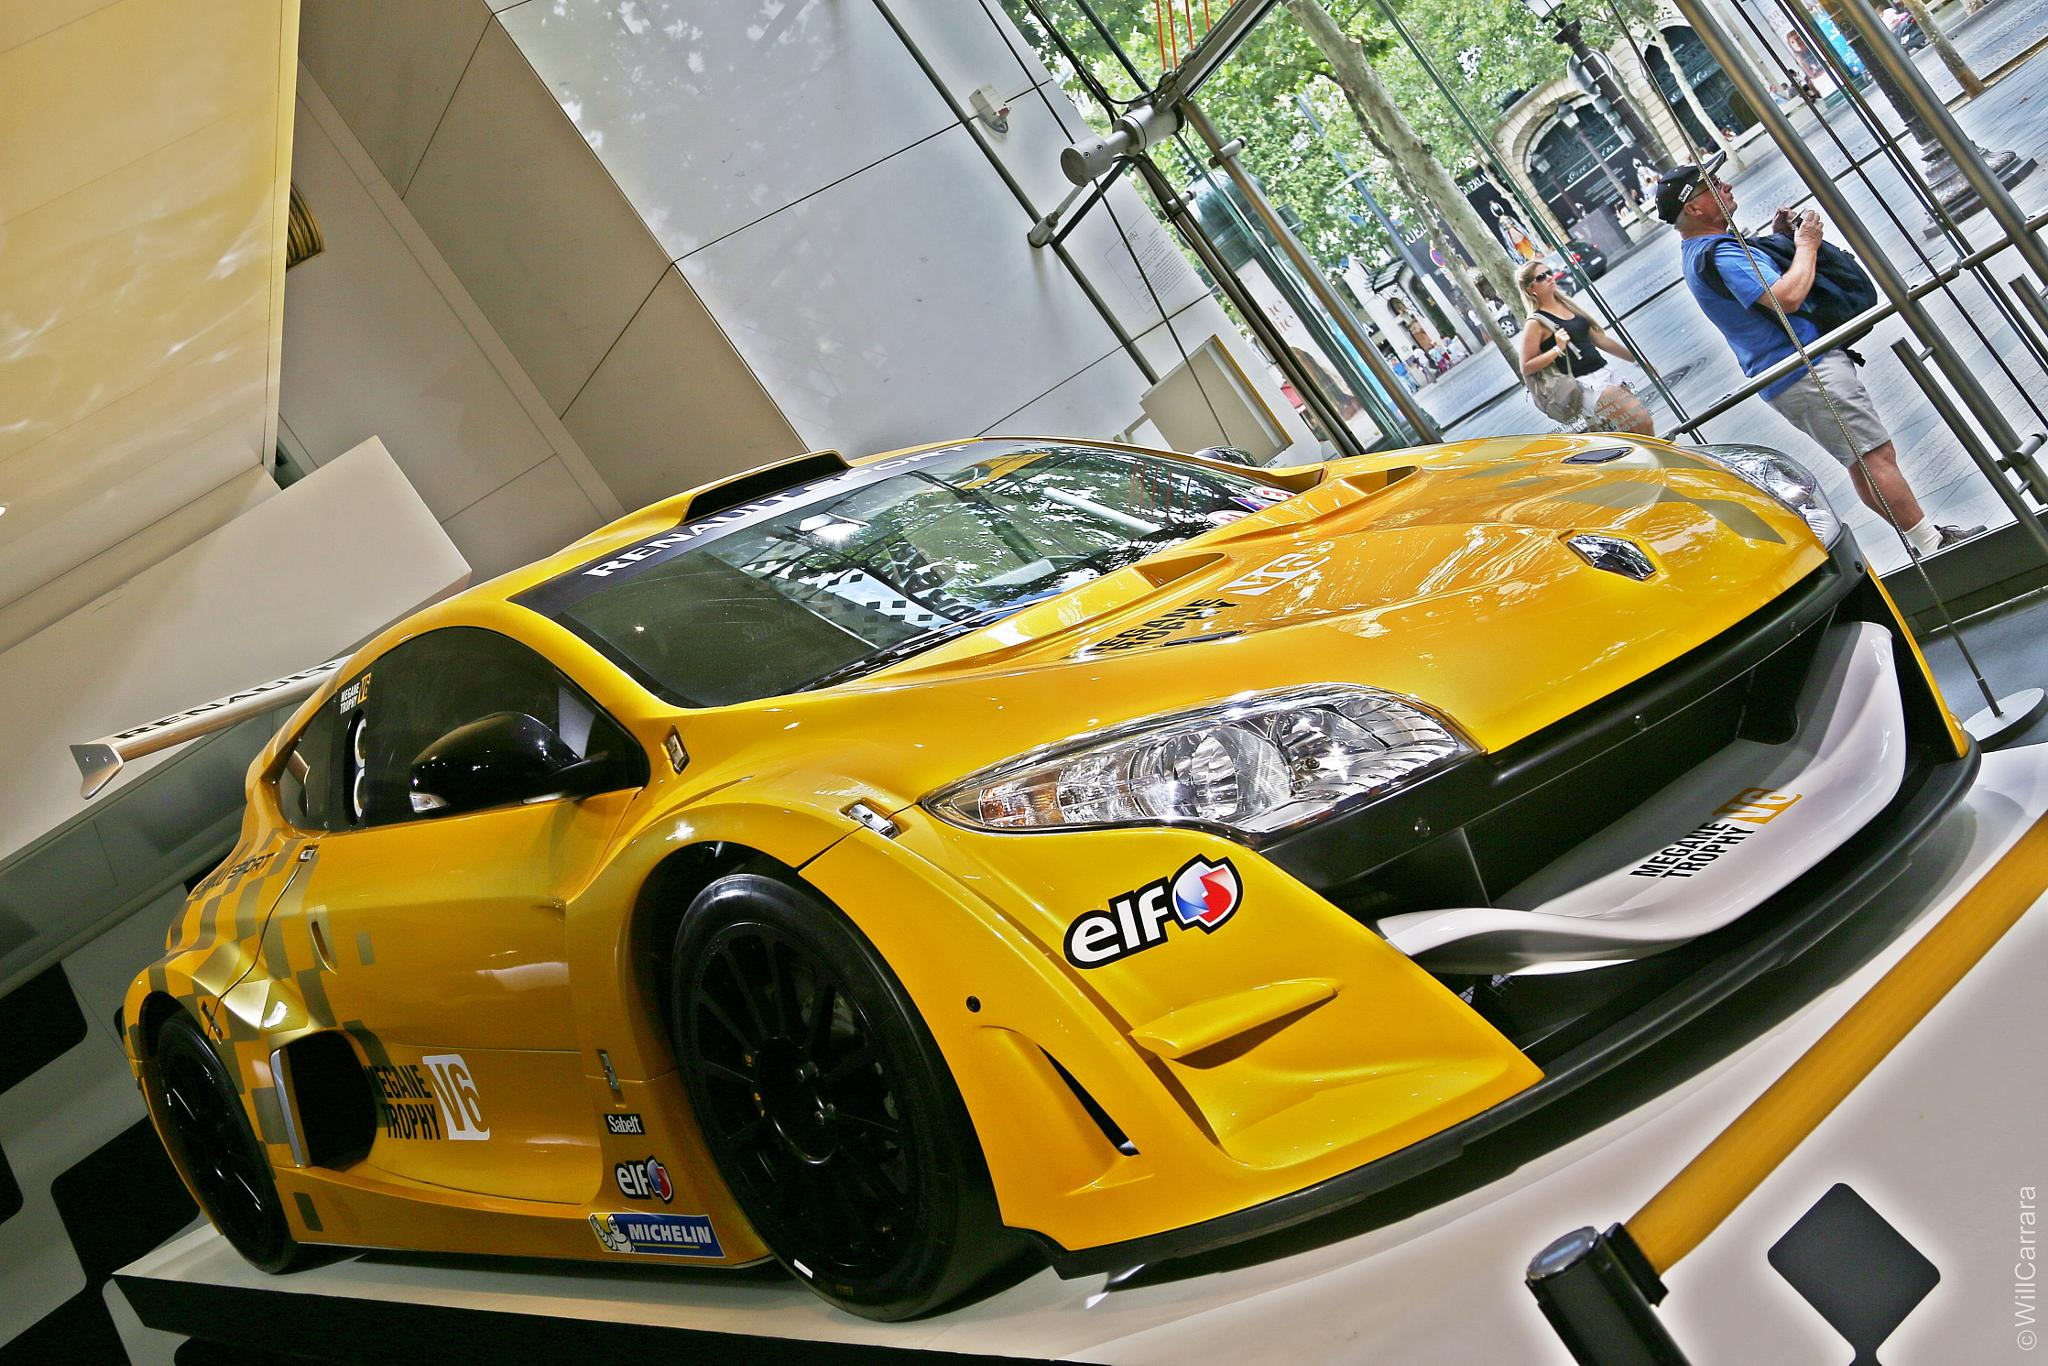 Car Renault Sport - Paris/France by Will Carrara Photographer